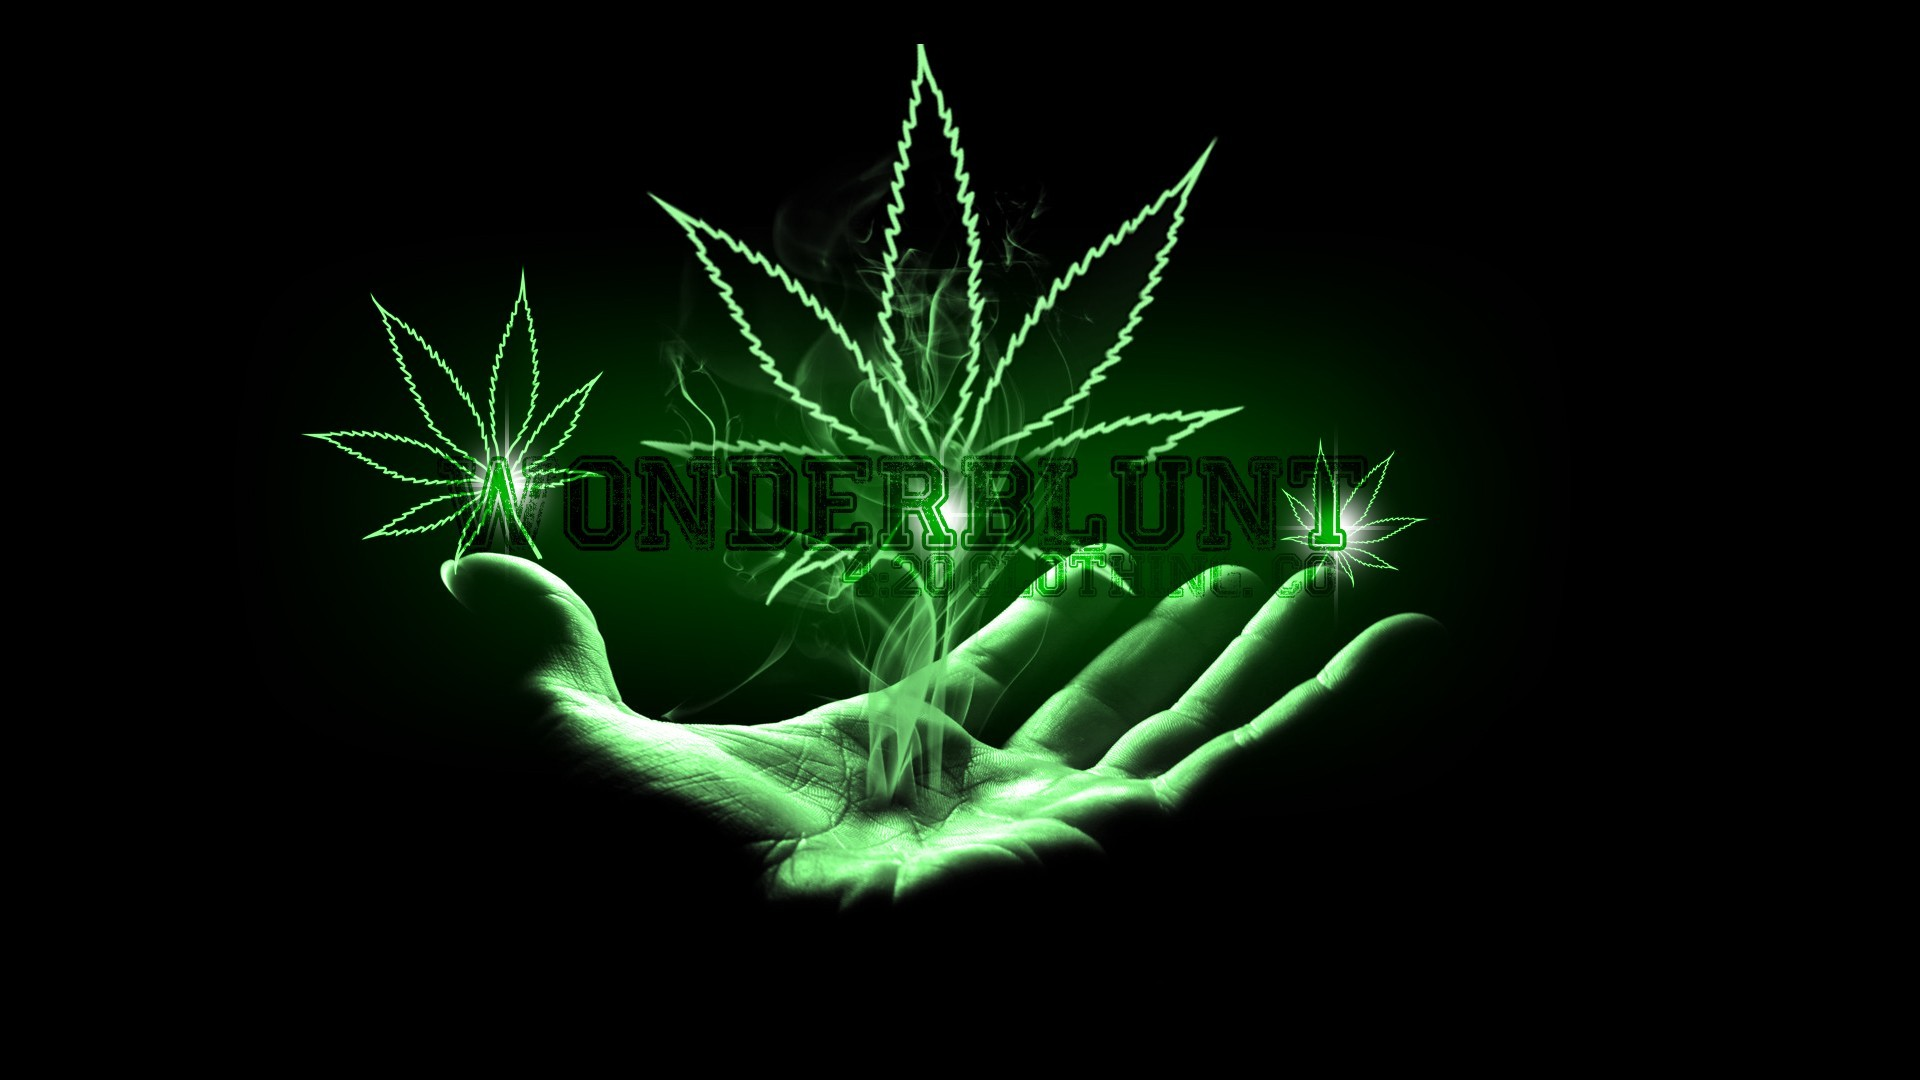 29 weed wallpapers for windows 10 on wallpapersafari 29 weed wallpapers for windows 10 on